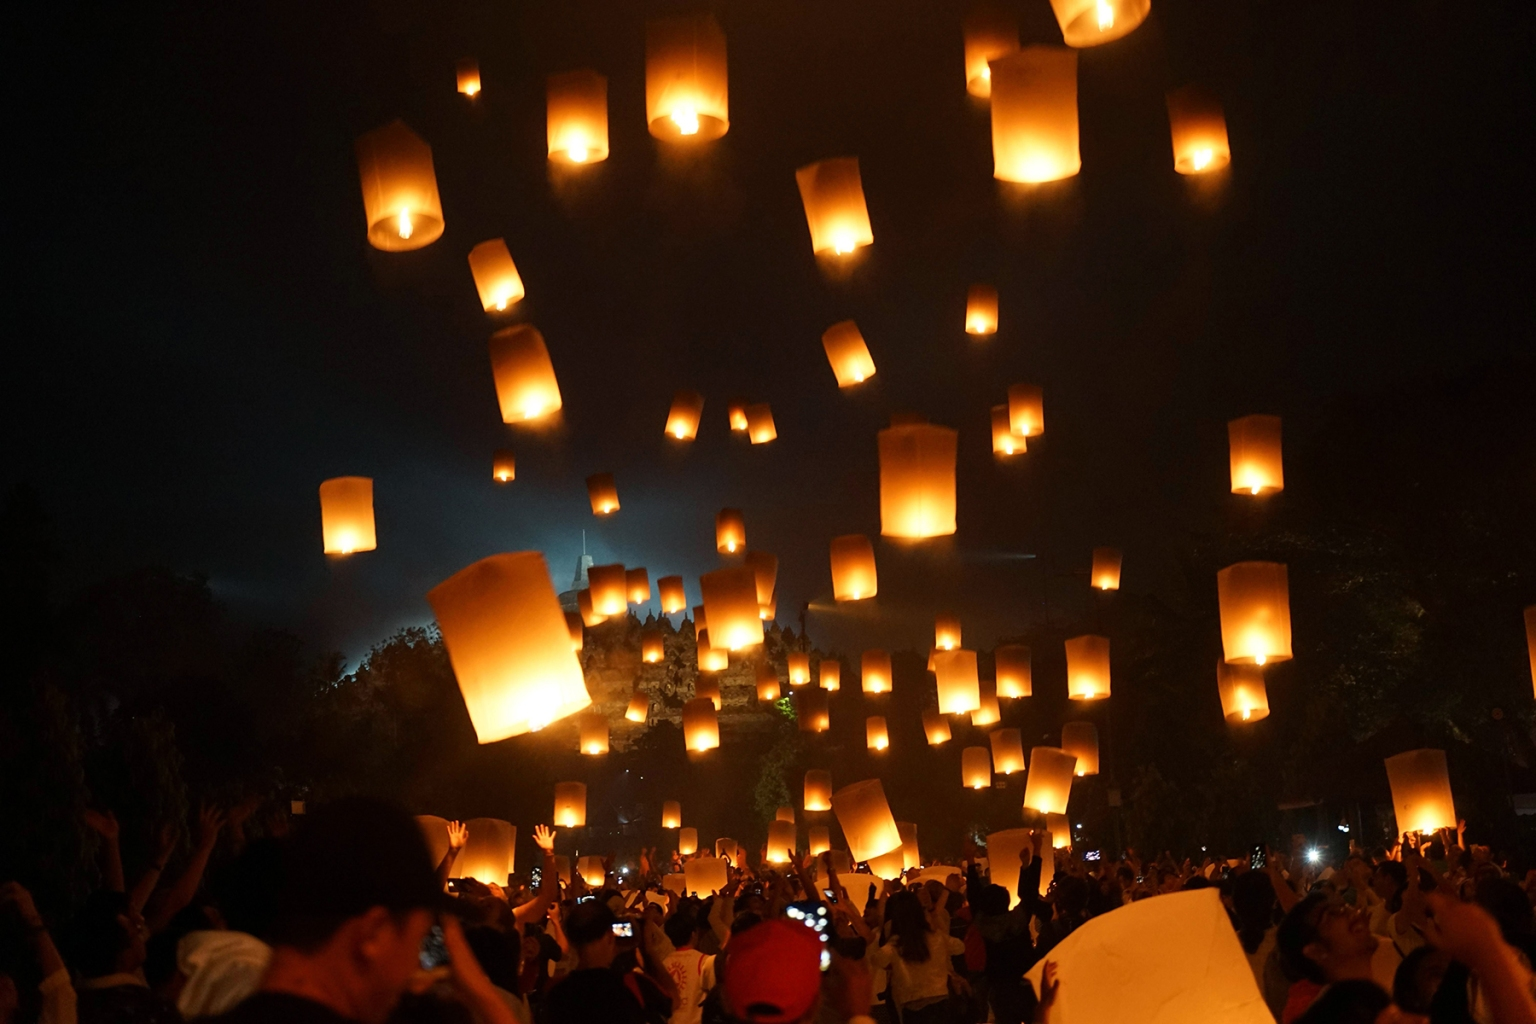 Buddhist devotees release lanterns into the air as a symbol of peace to honor Buddha's birthday at Borobudur temple in Magelang, Central Java, on May 19. OKA HAMIED/AFP/Getty Images